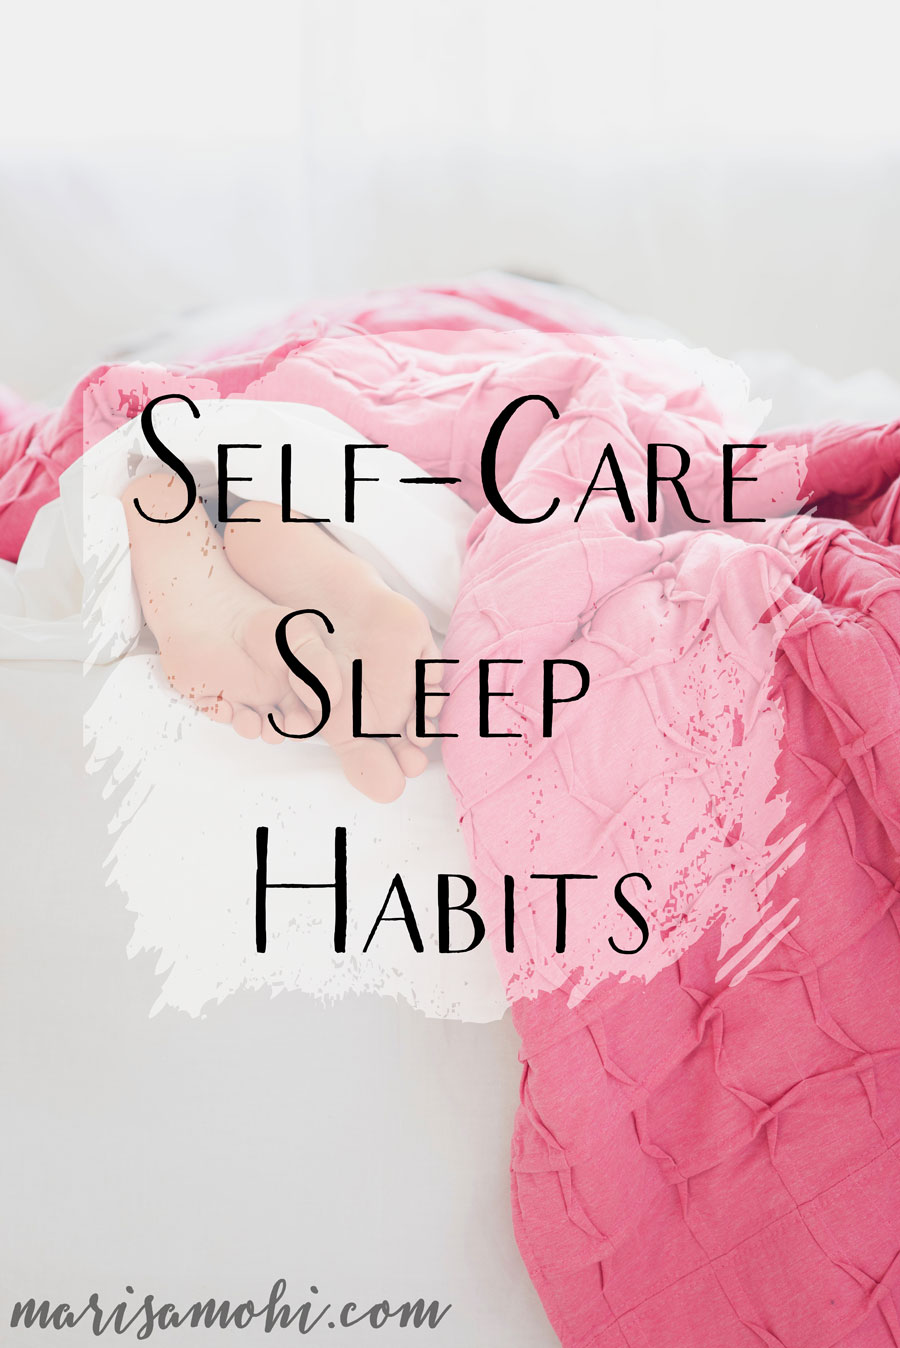 Self-Care Sleep Habits